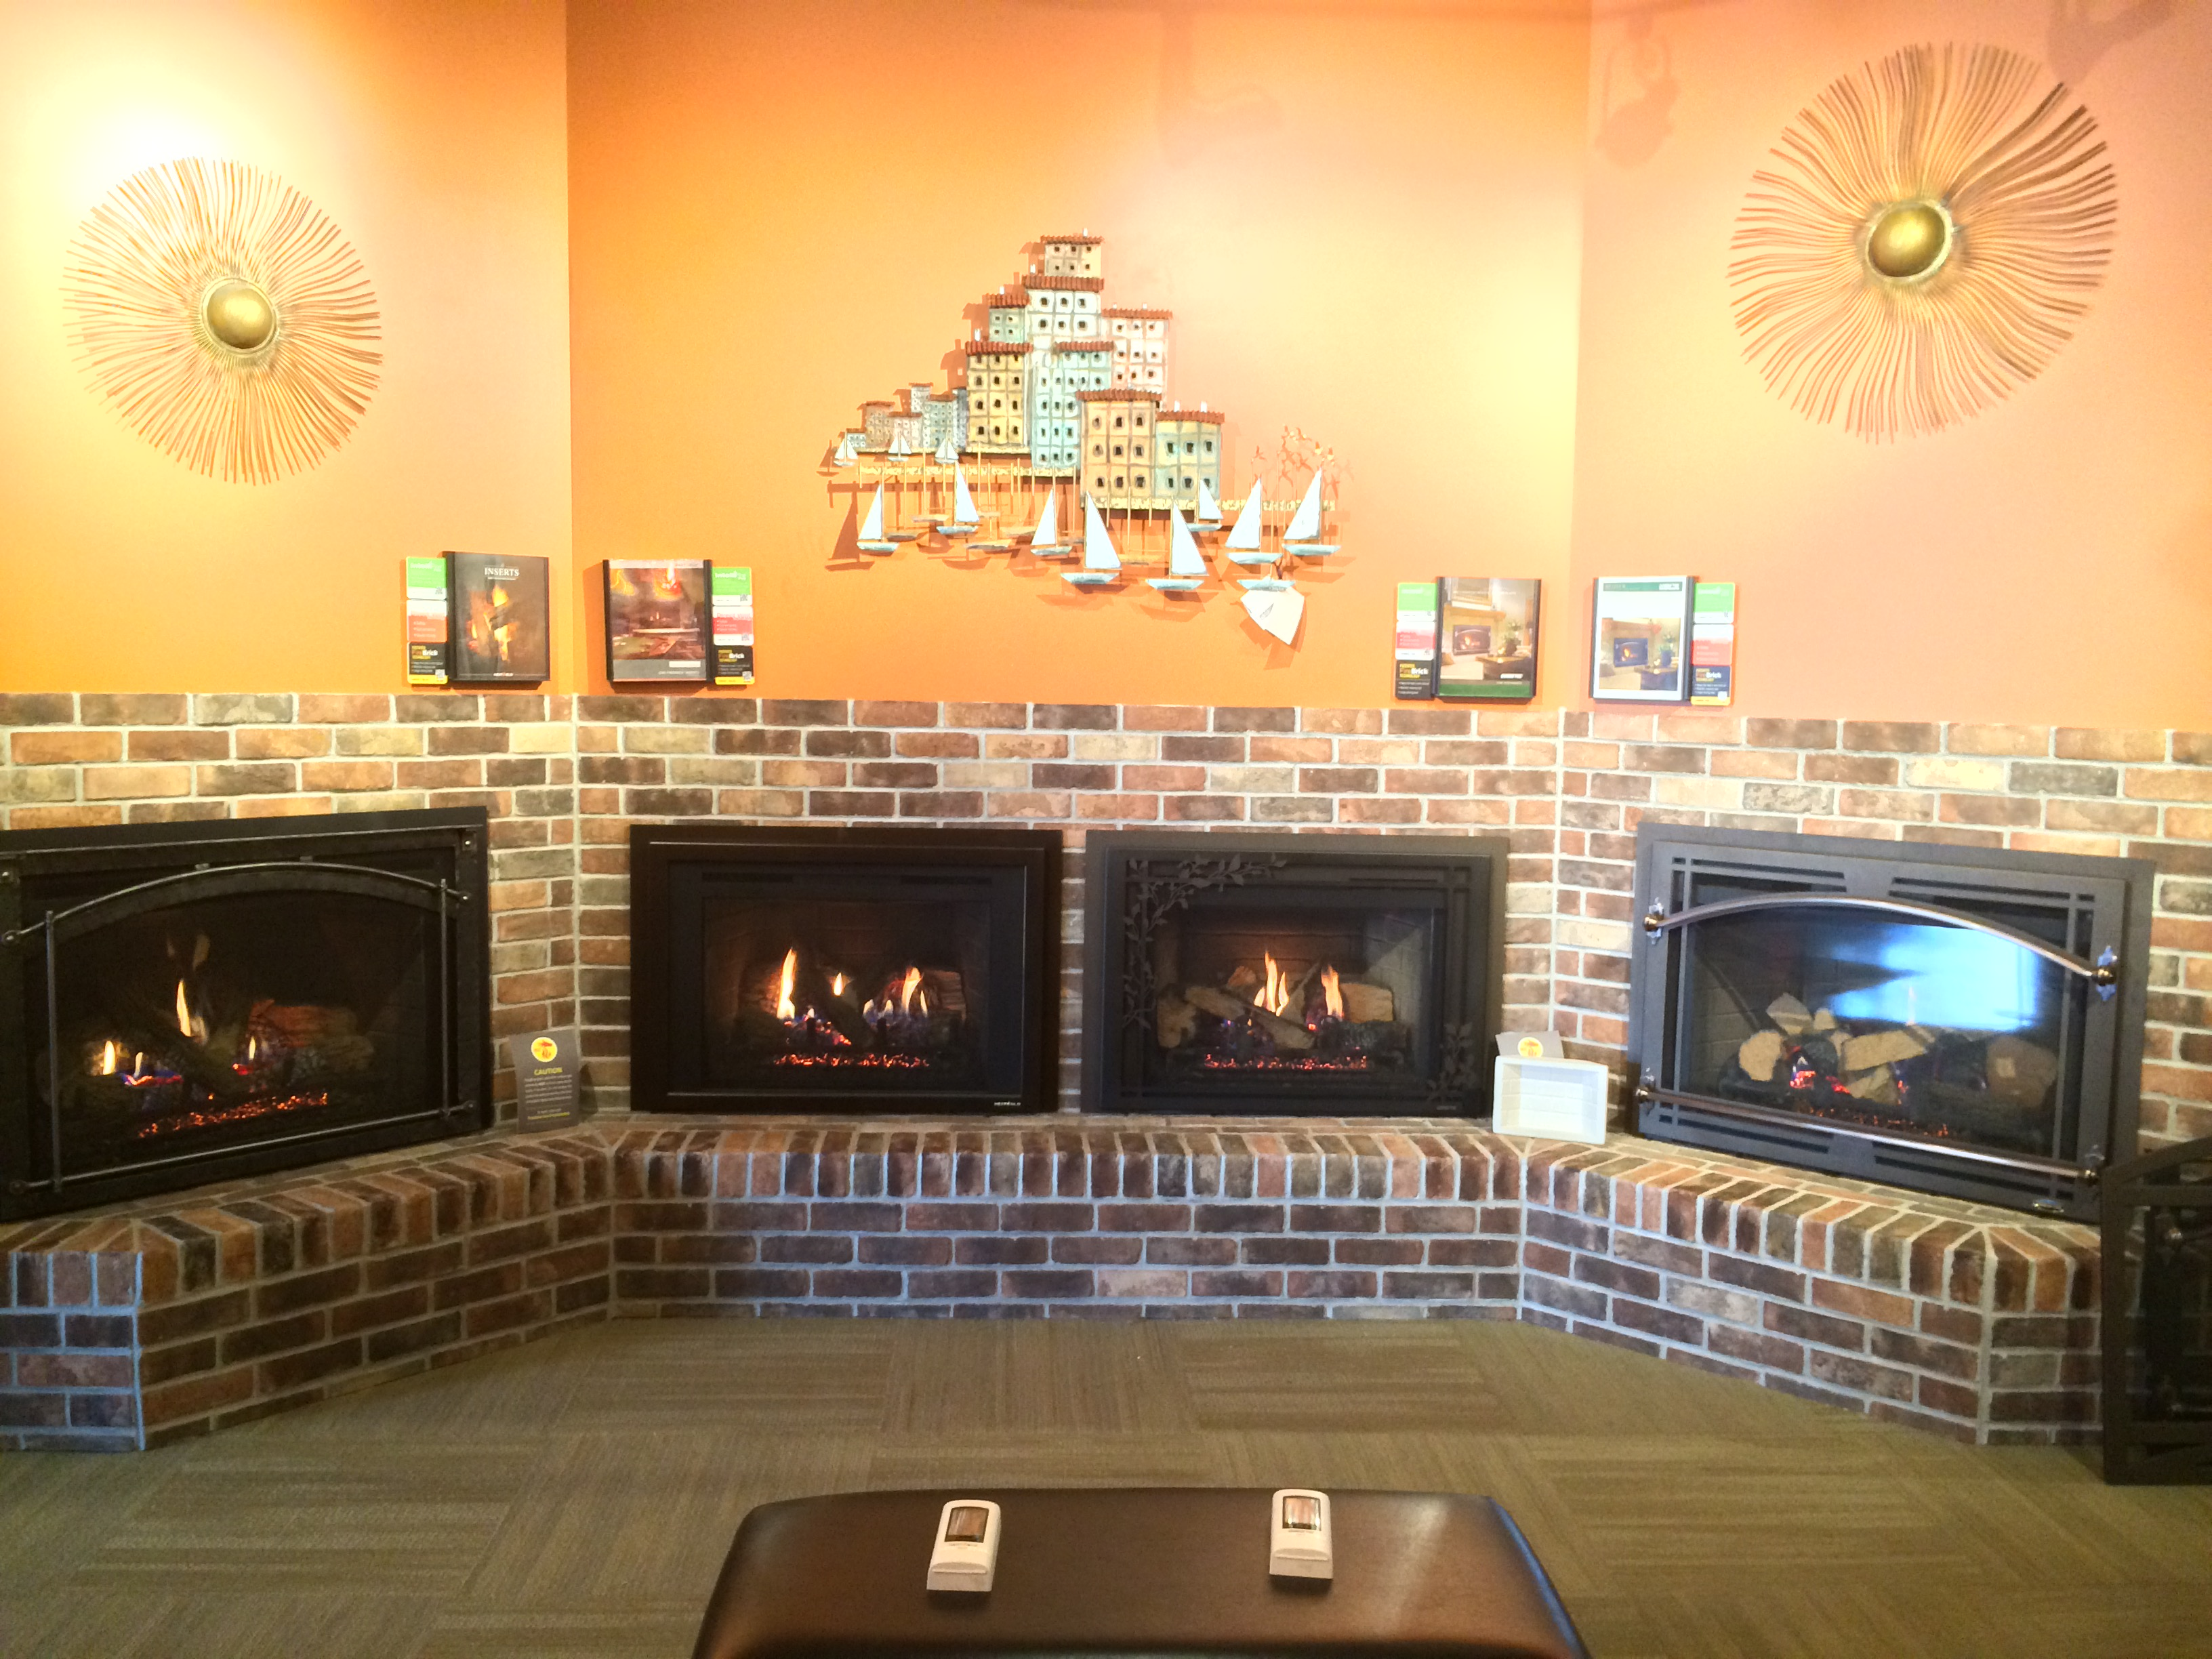 Alaskan Fireplace Coupons Near Me In Sturtevant 8coupons